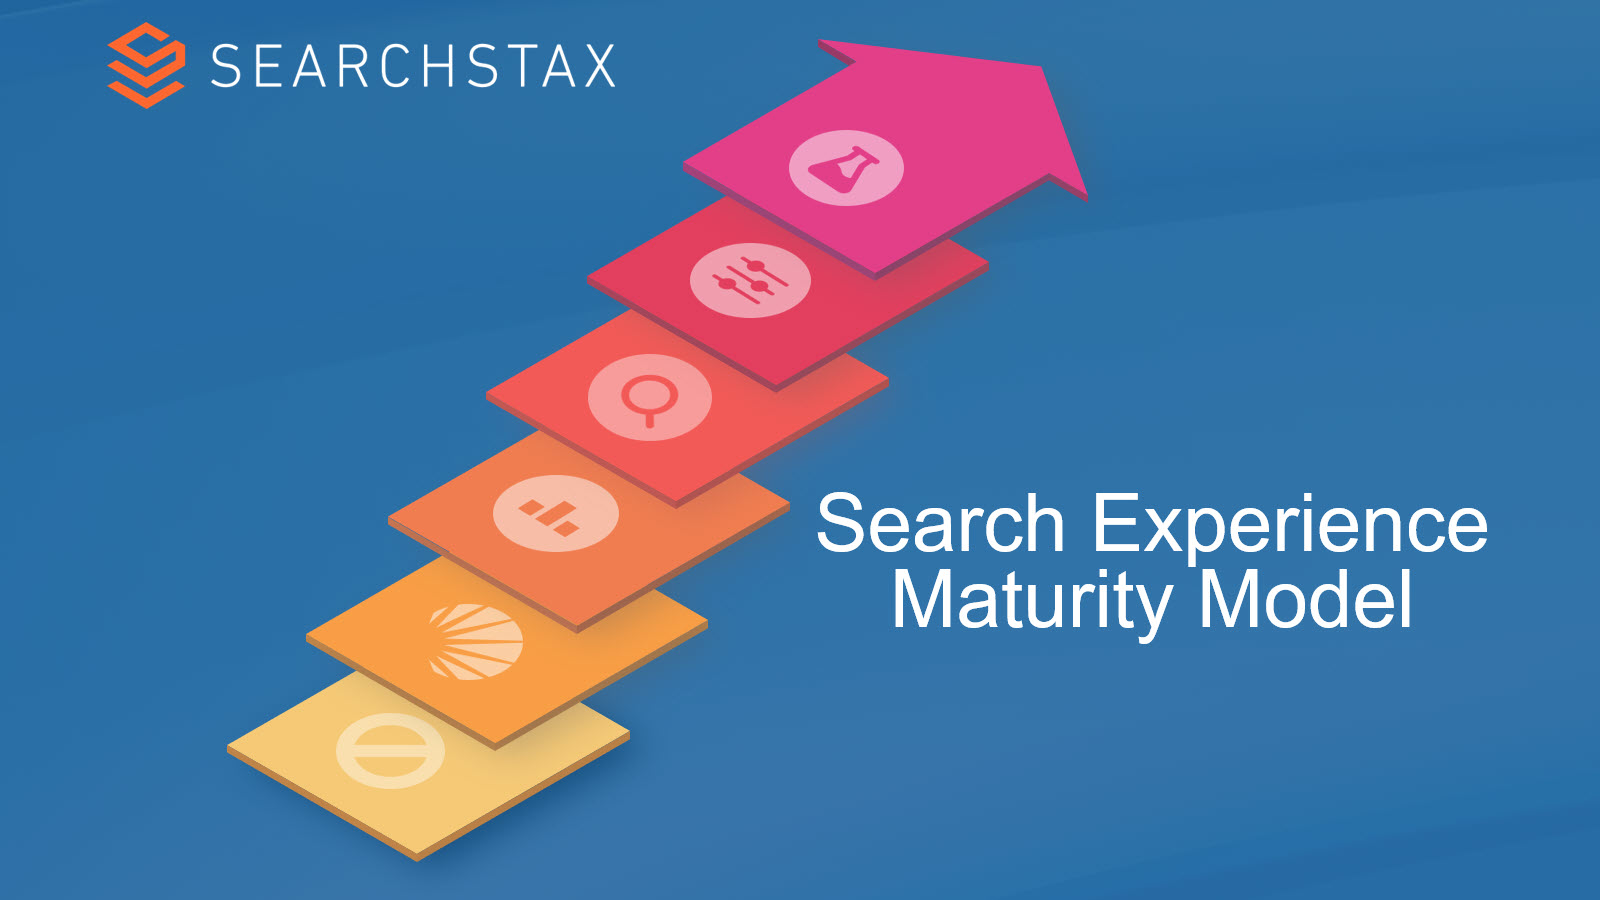 SearchStax Search Experience Maturity Model